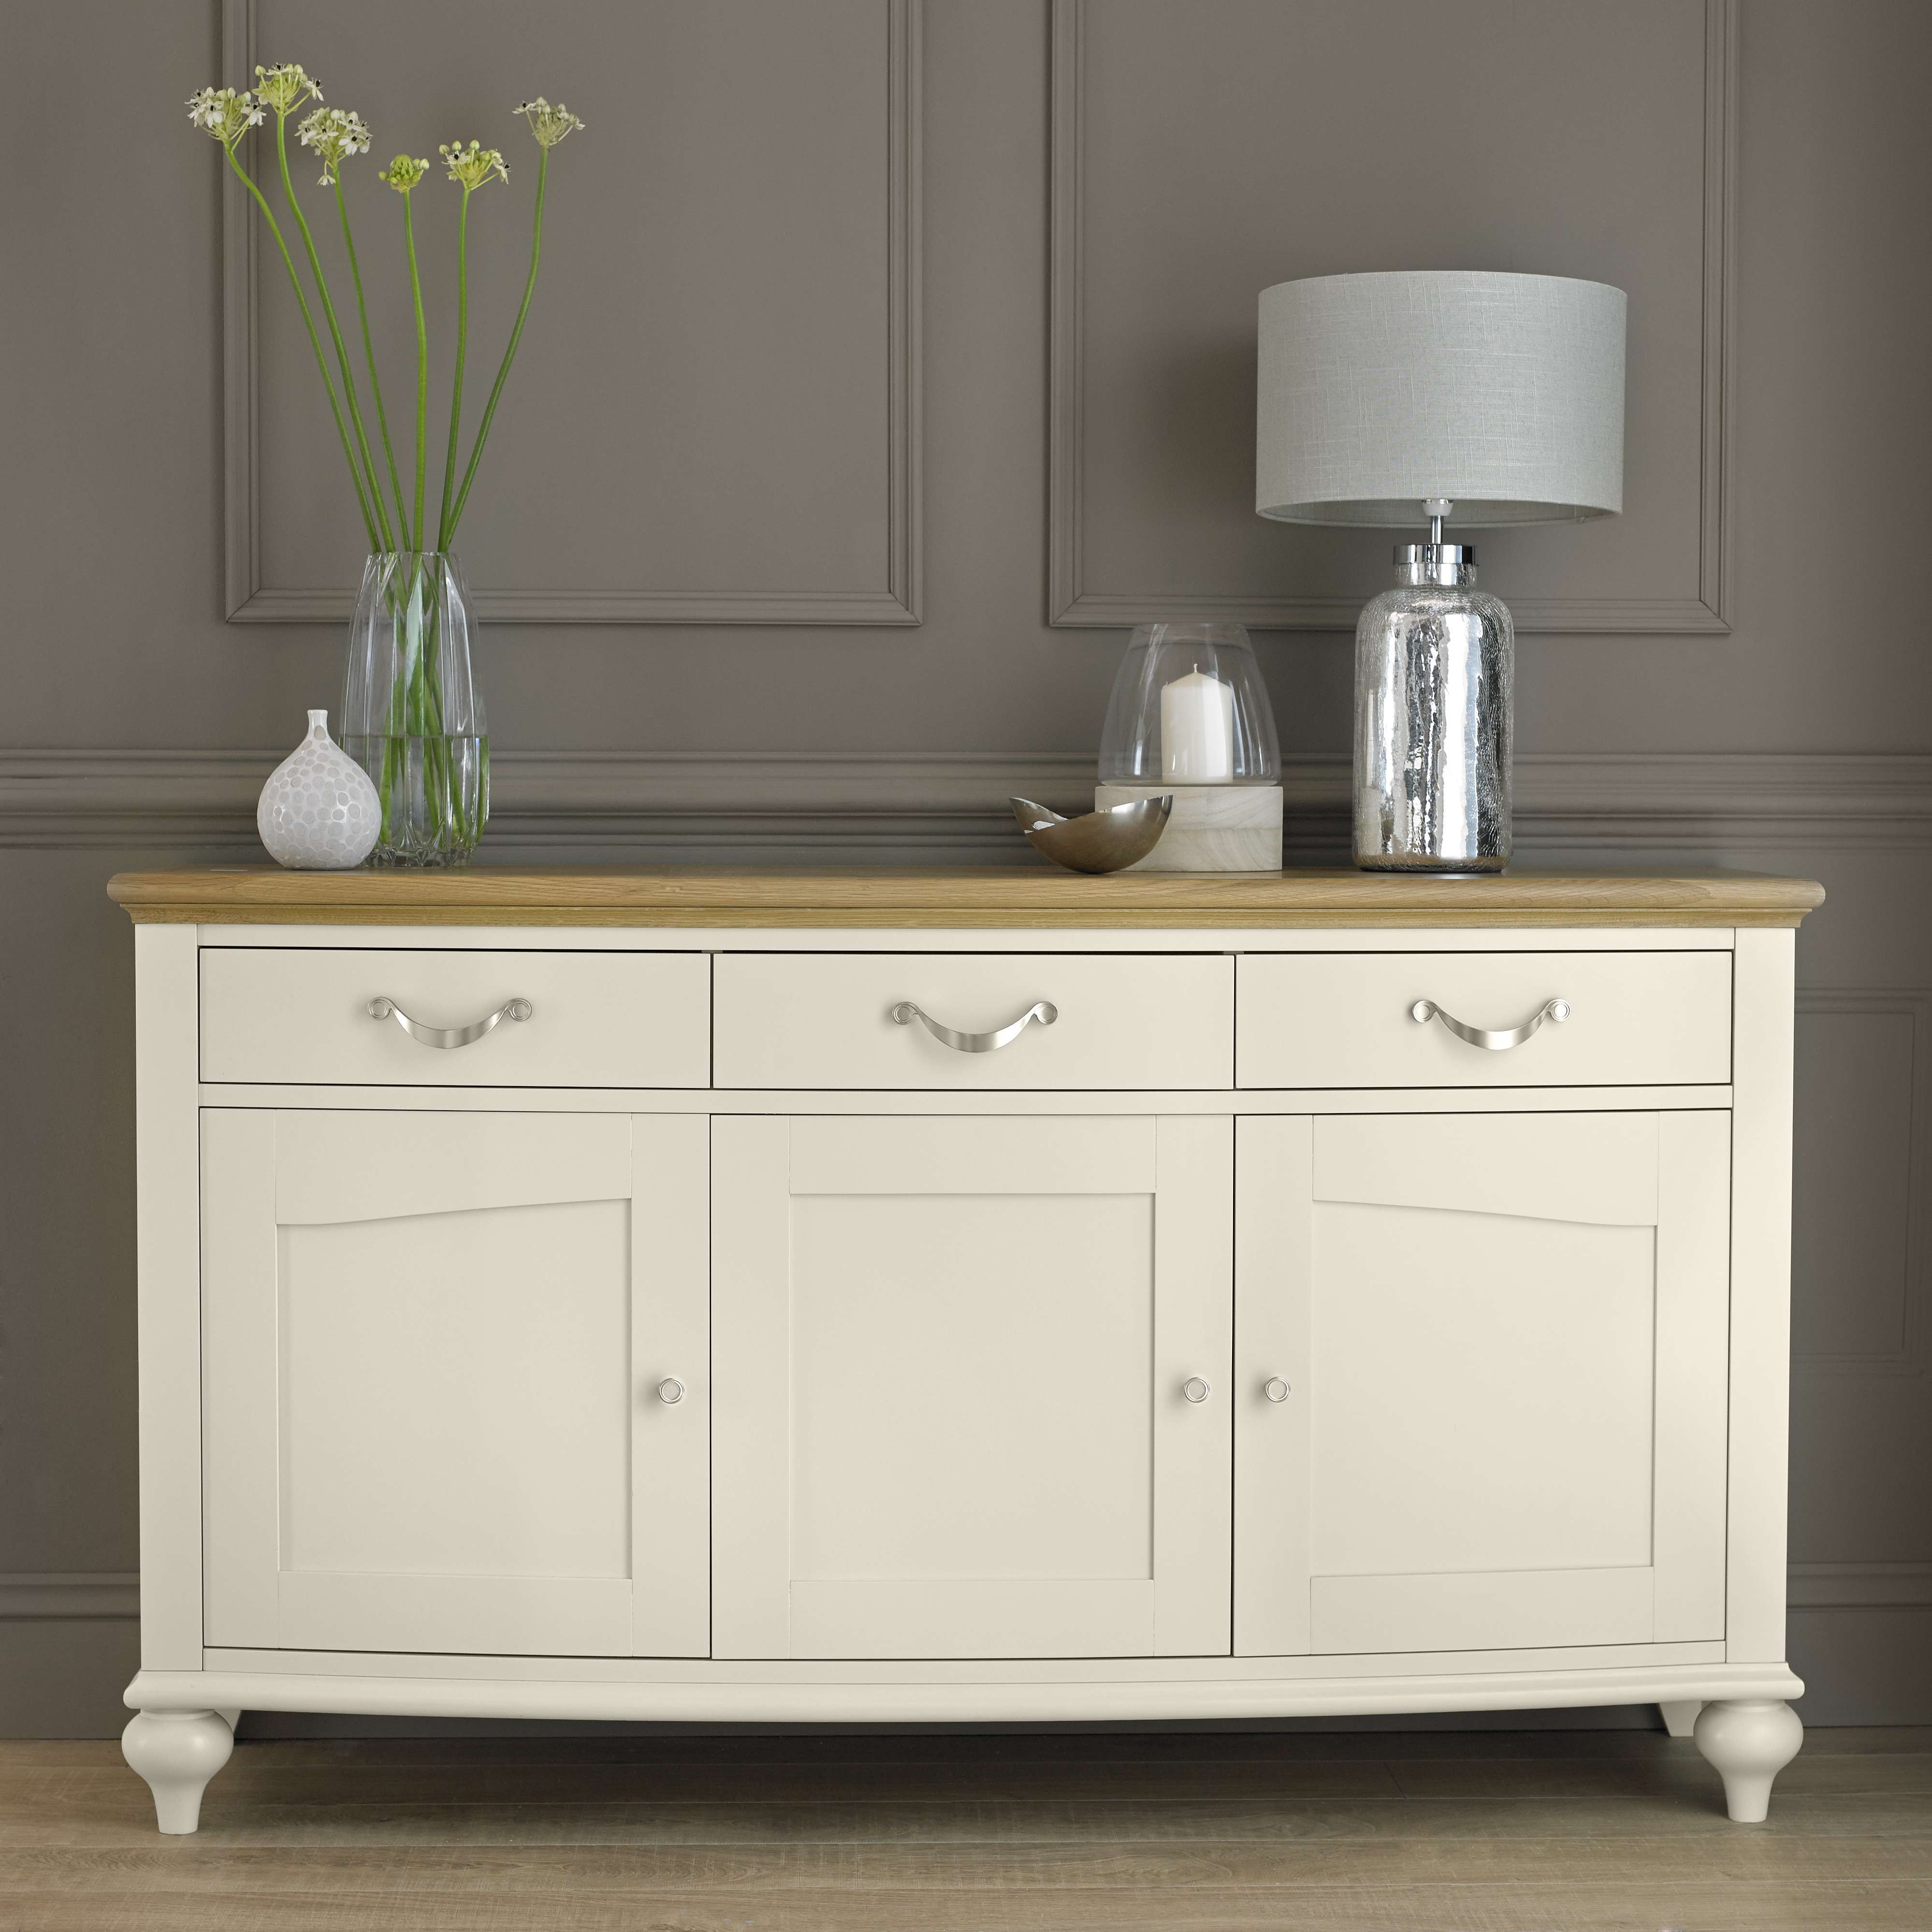 Painted Sideboards – White Wooden Sideboards | Oak Furniture Solutions With Regard To Low Wide Sideboards (View 20 of 20)